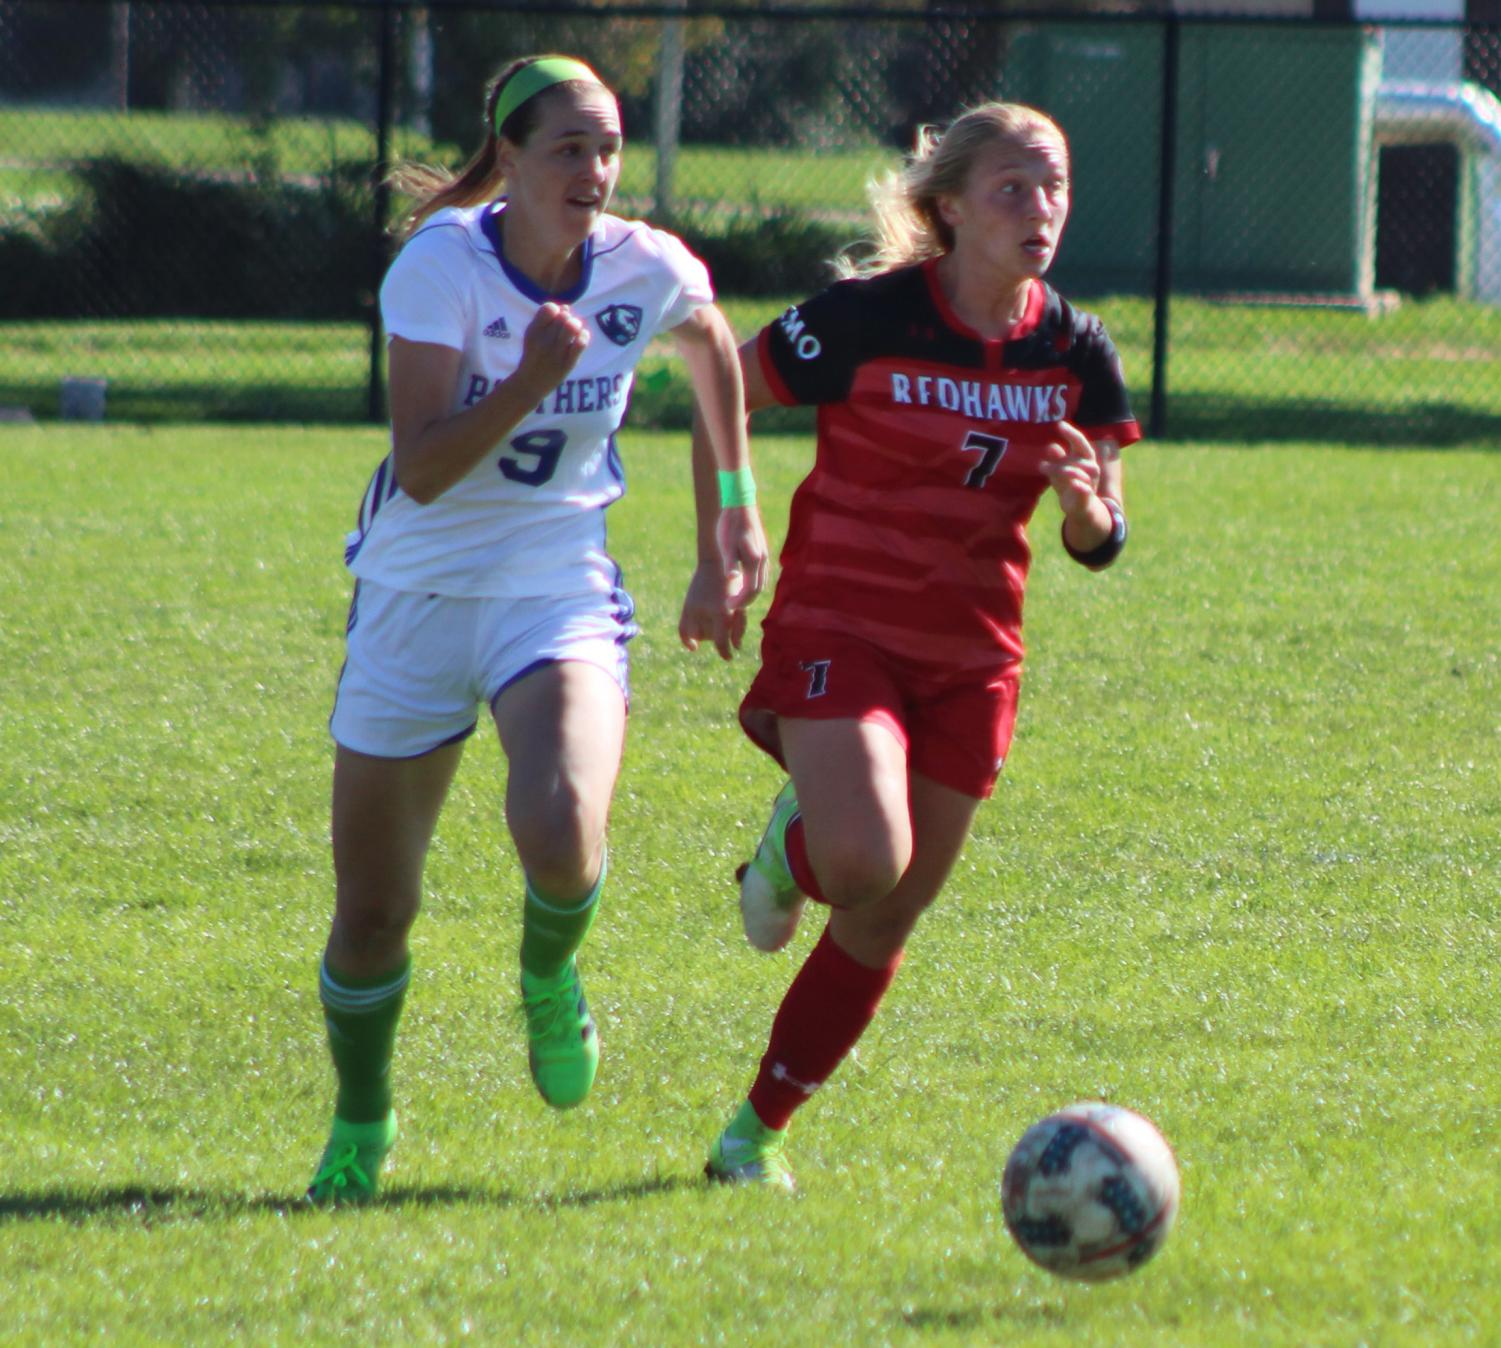 Eastern junior Sarah DeWolf pushes the ball upfield against Southeast Missouri on Oct. 11 at Lakeside Field. The Panthers lost the match 1-0 in overtime.